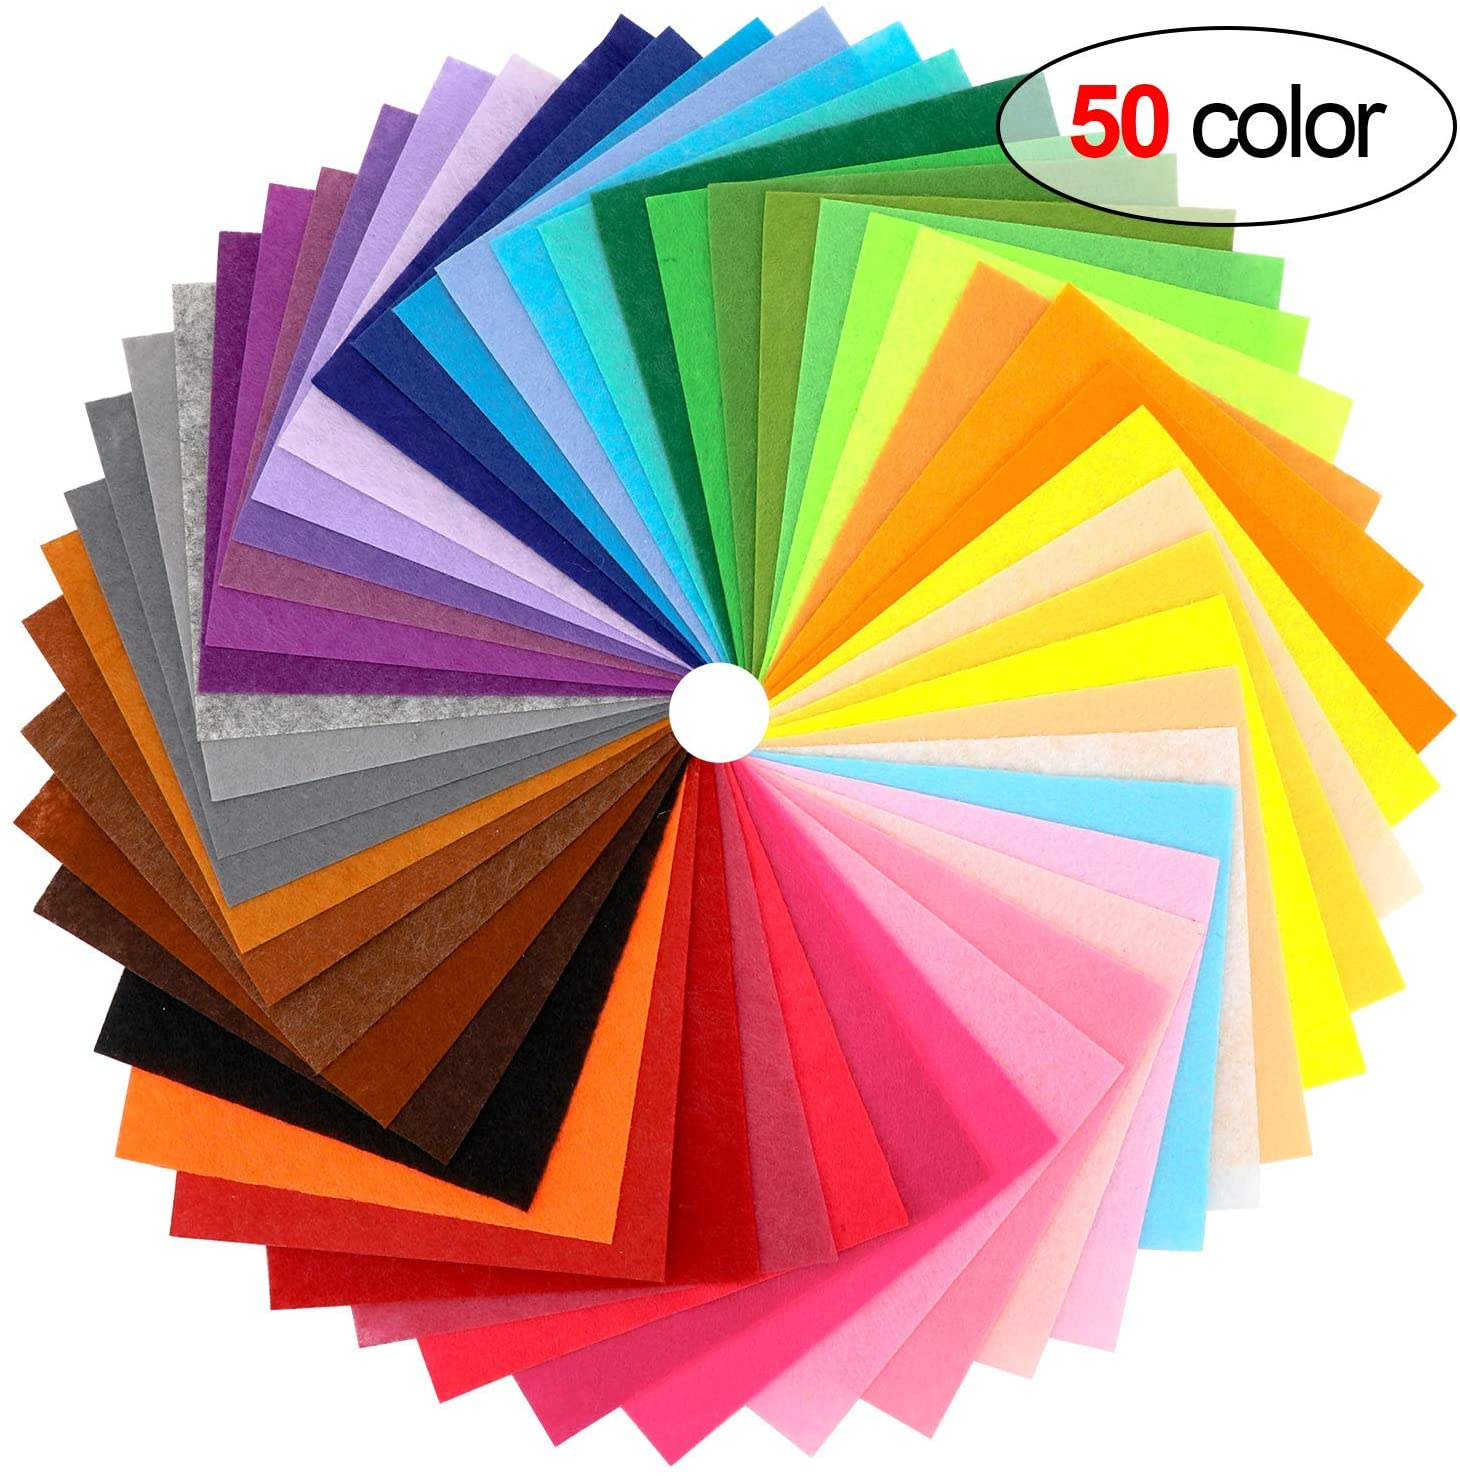 Konsait 50 Pieces Craft Felt Fabric Sheets 6 x 6 Inches with 1mm Thickness Assorted Color Stiff Sewing Material Squares Nonwoven Patchwork Sewing DIY Craft